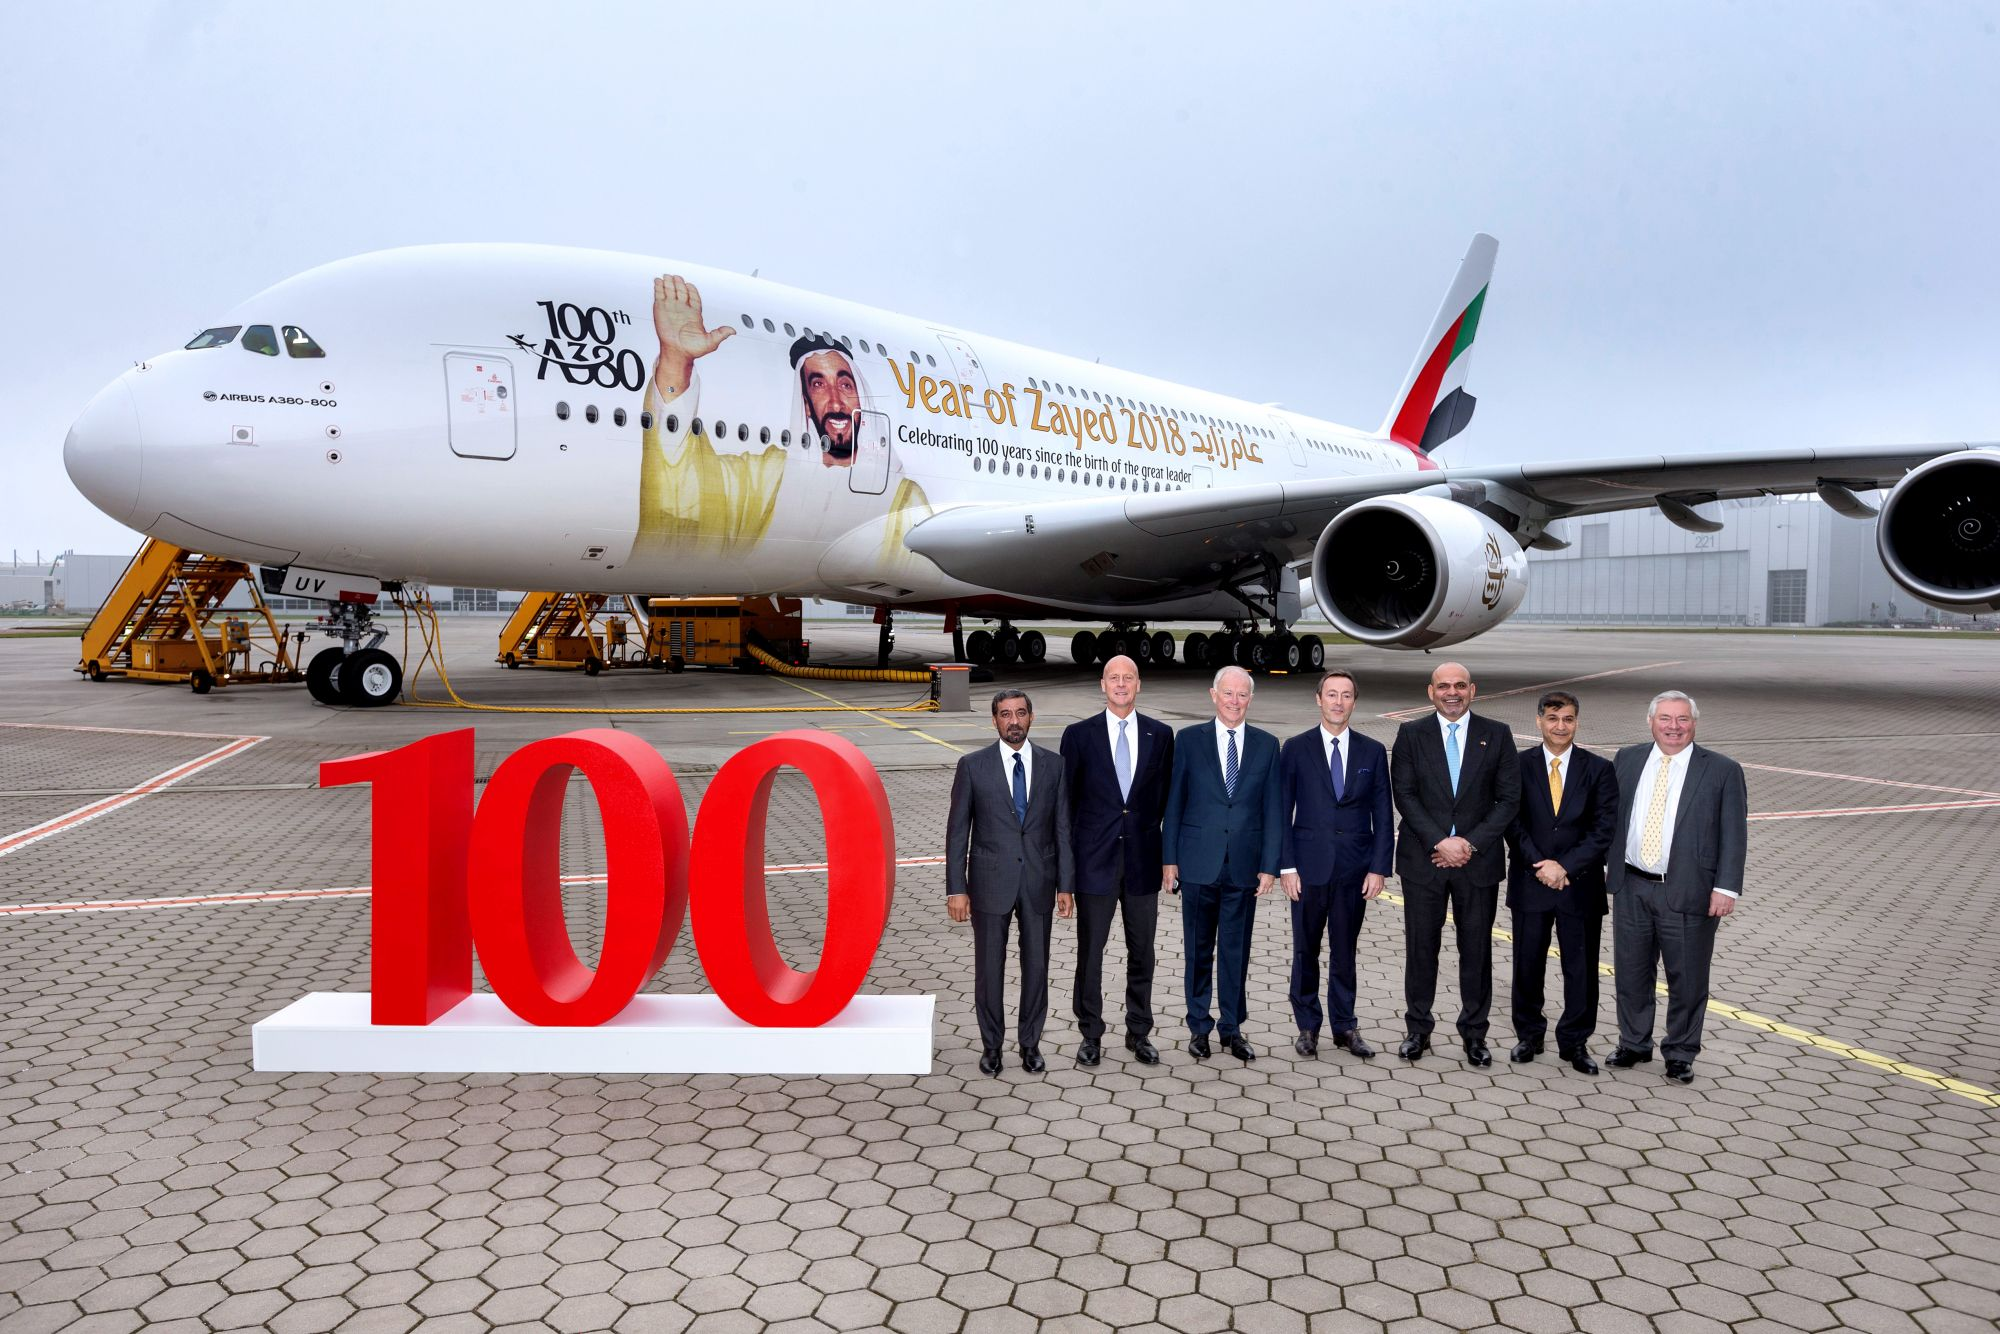 Emirates Takes Delivery of Its 100th Airbus A380